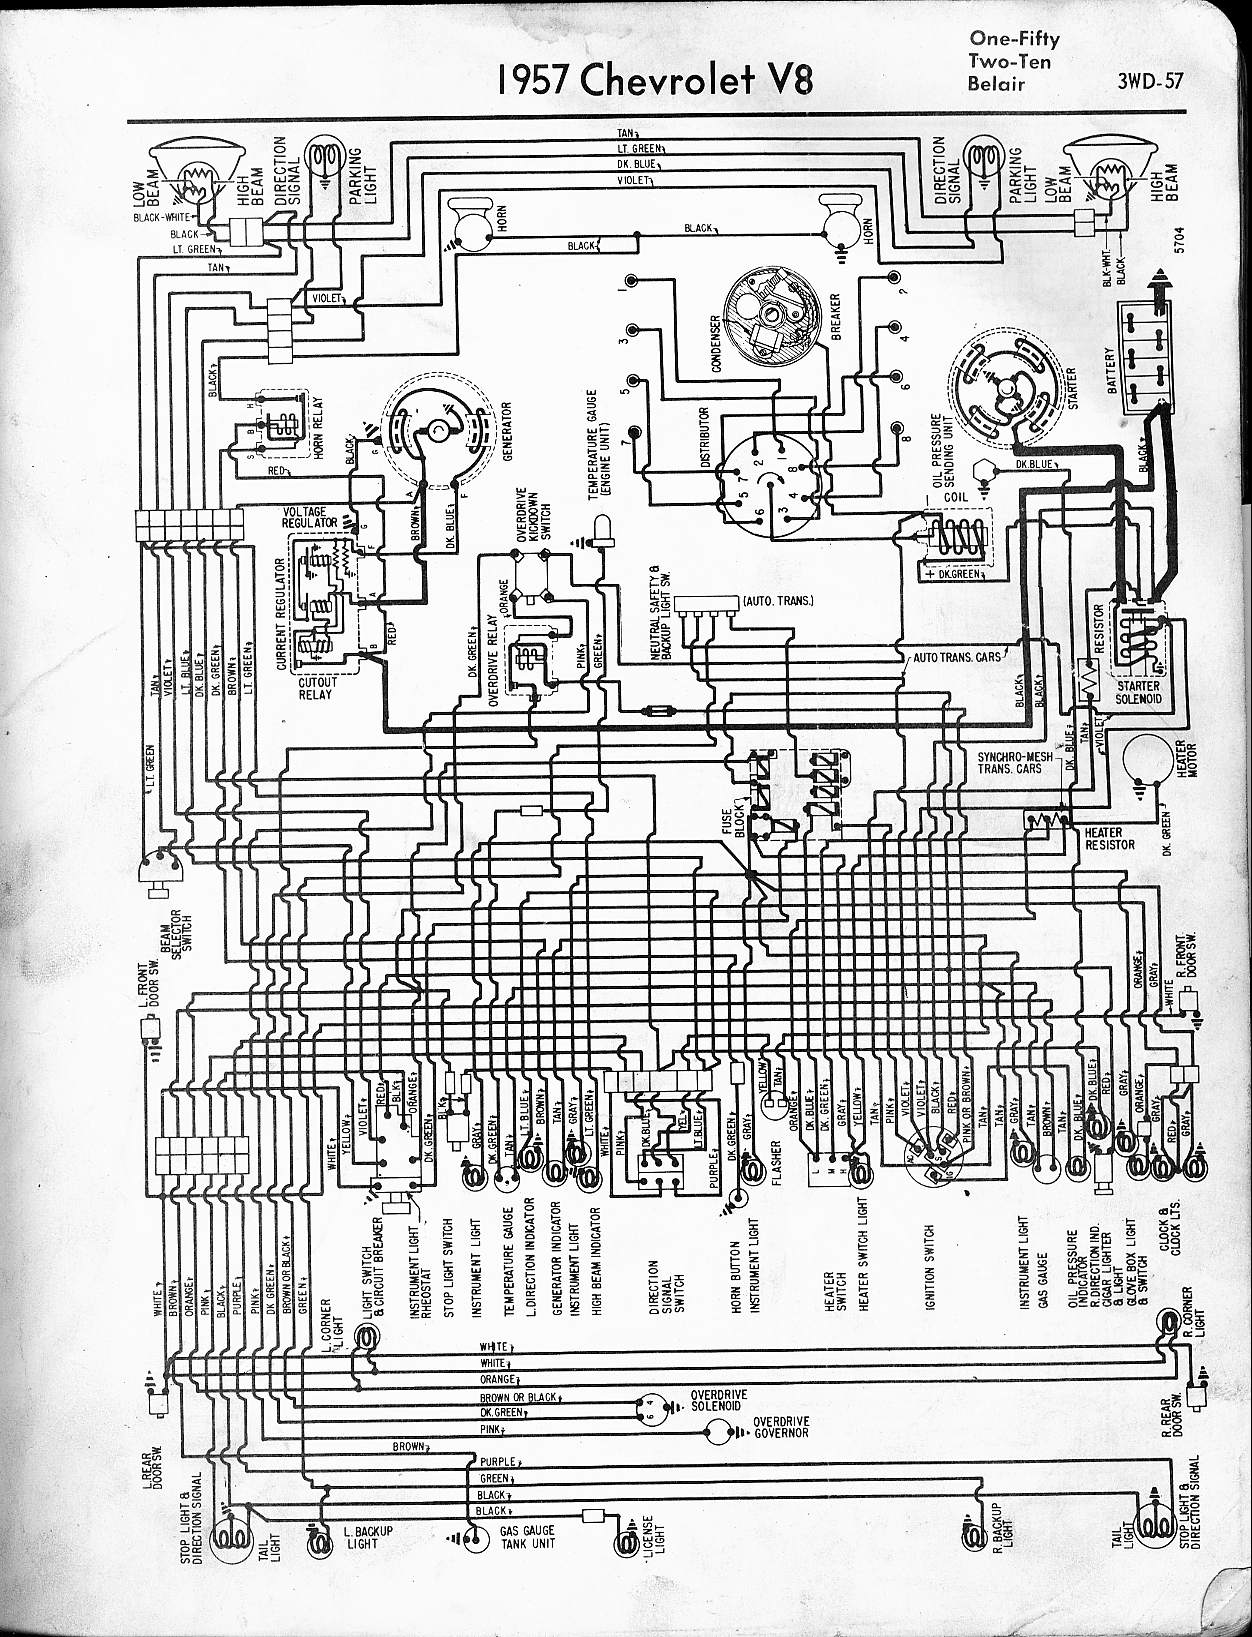 MWireChev57_3WD 057 57 65 chevy wiring diagrams 1956 Bel Air Wiring Diagram at soozxer.org